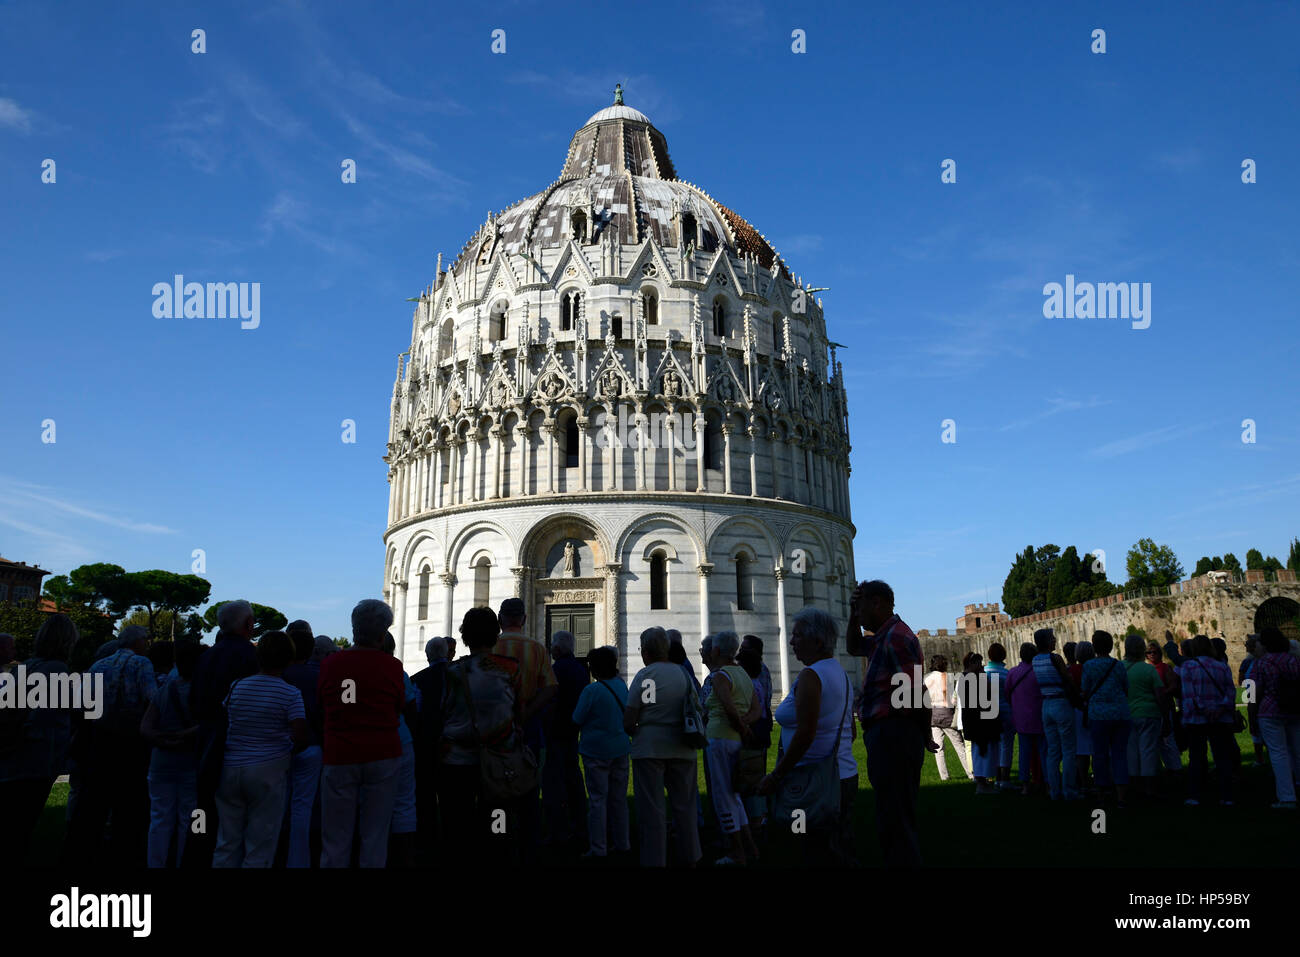 tourists, tourist, queue, queuing, line, view viewing, The Baptistery, Duomo, medieval cathedral, Archdiocese of Stock Photo